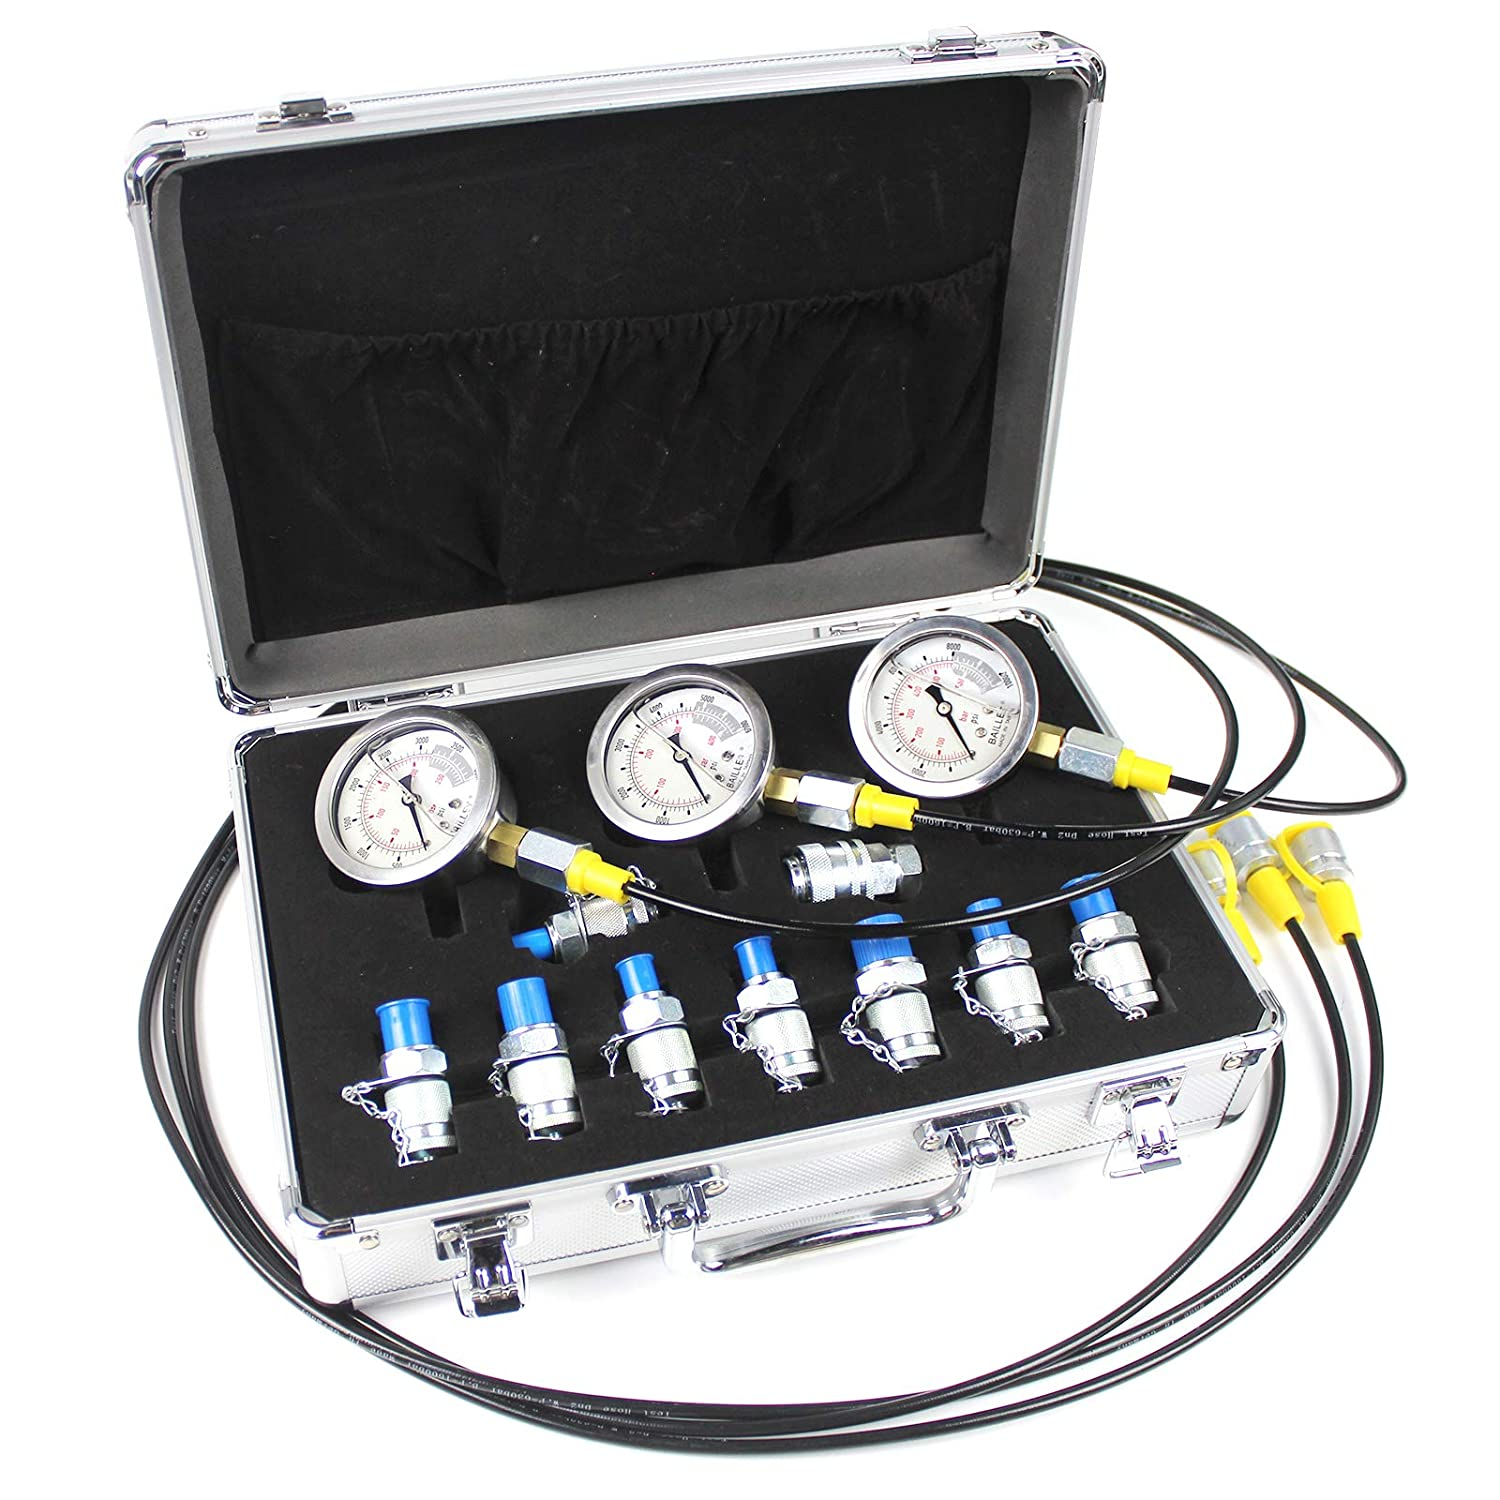 COPACHI 9000psi Hydraulic Pressure Guage Kit with 3pcs Oil Gauges 3pcs Test Hose 10pcs Text Coupling for Most Excavator Hydraulic Testing Working, in a Strong and Light Aluminum Case hydraulic gauges